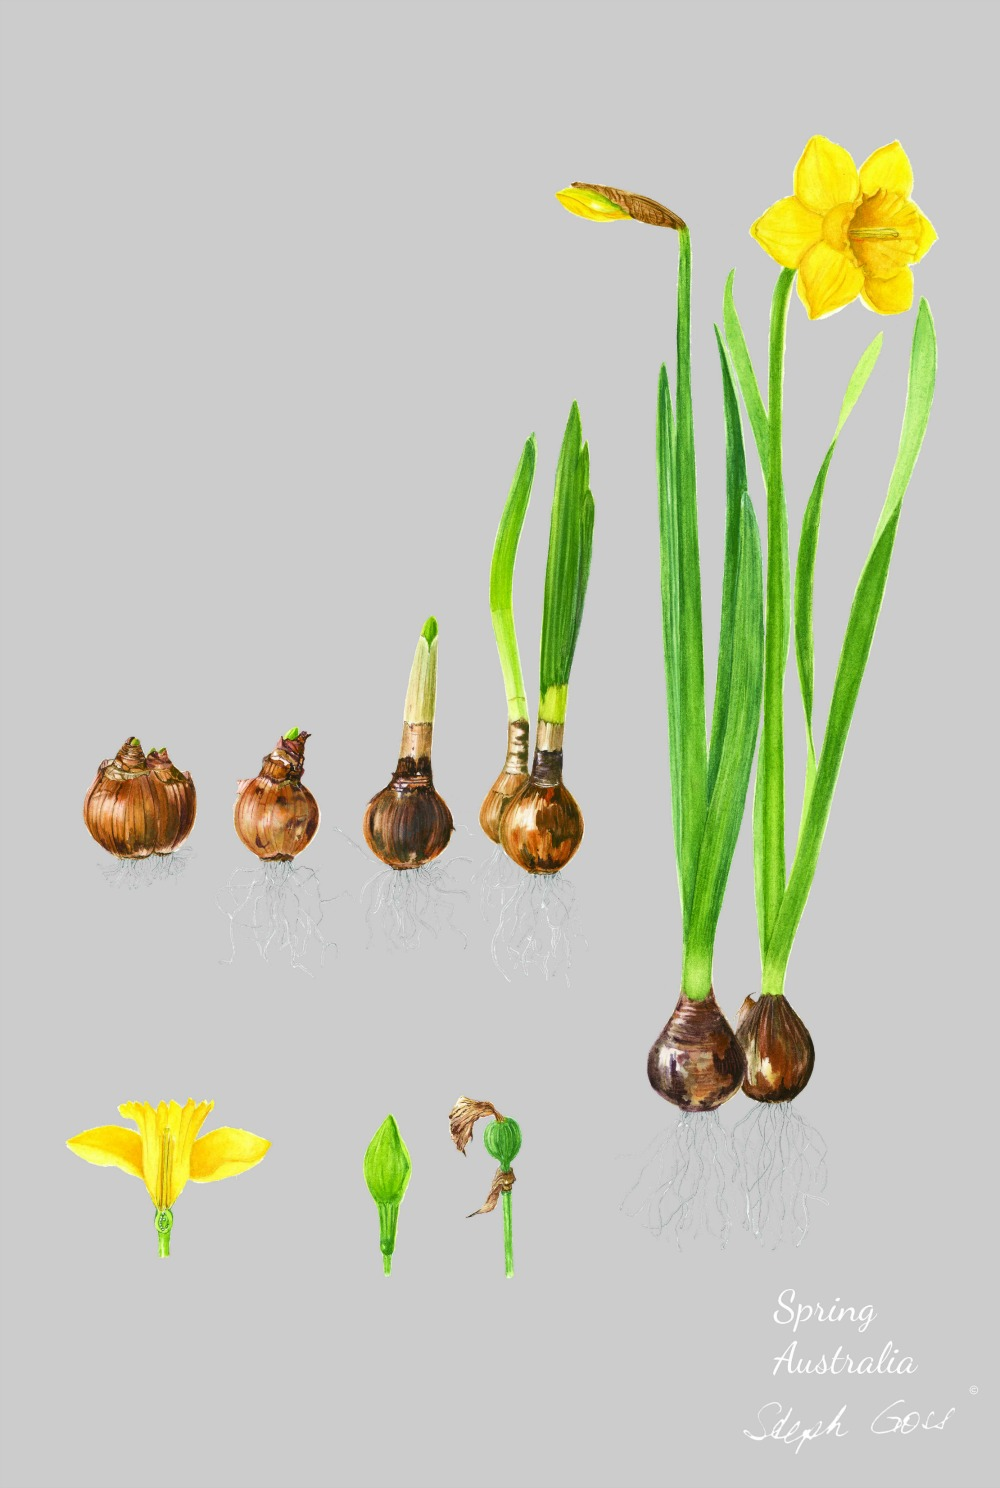 Daffodil bulbs on grey